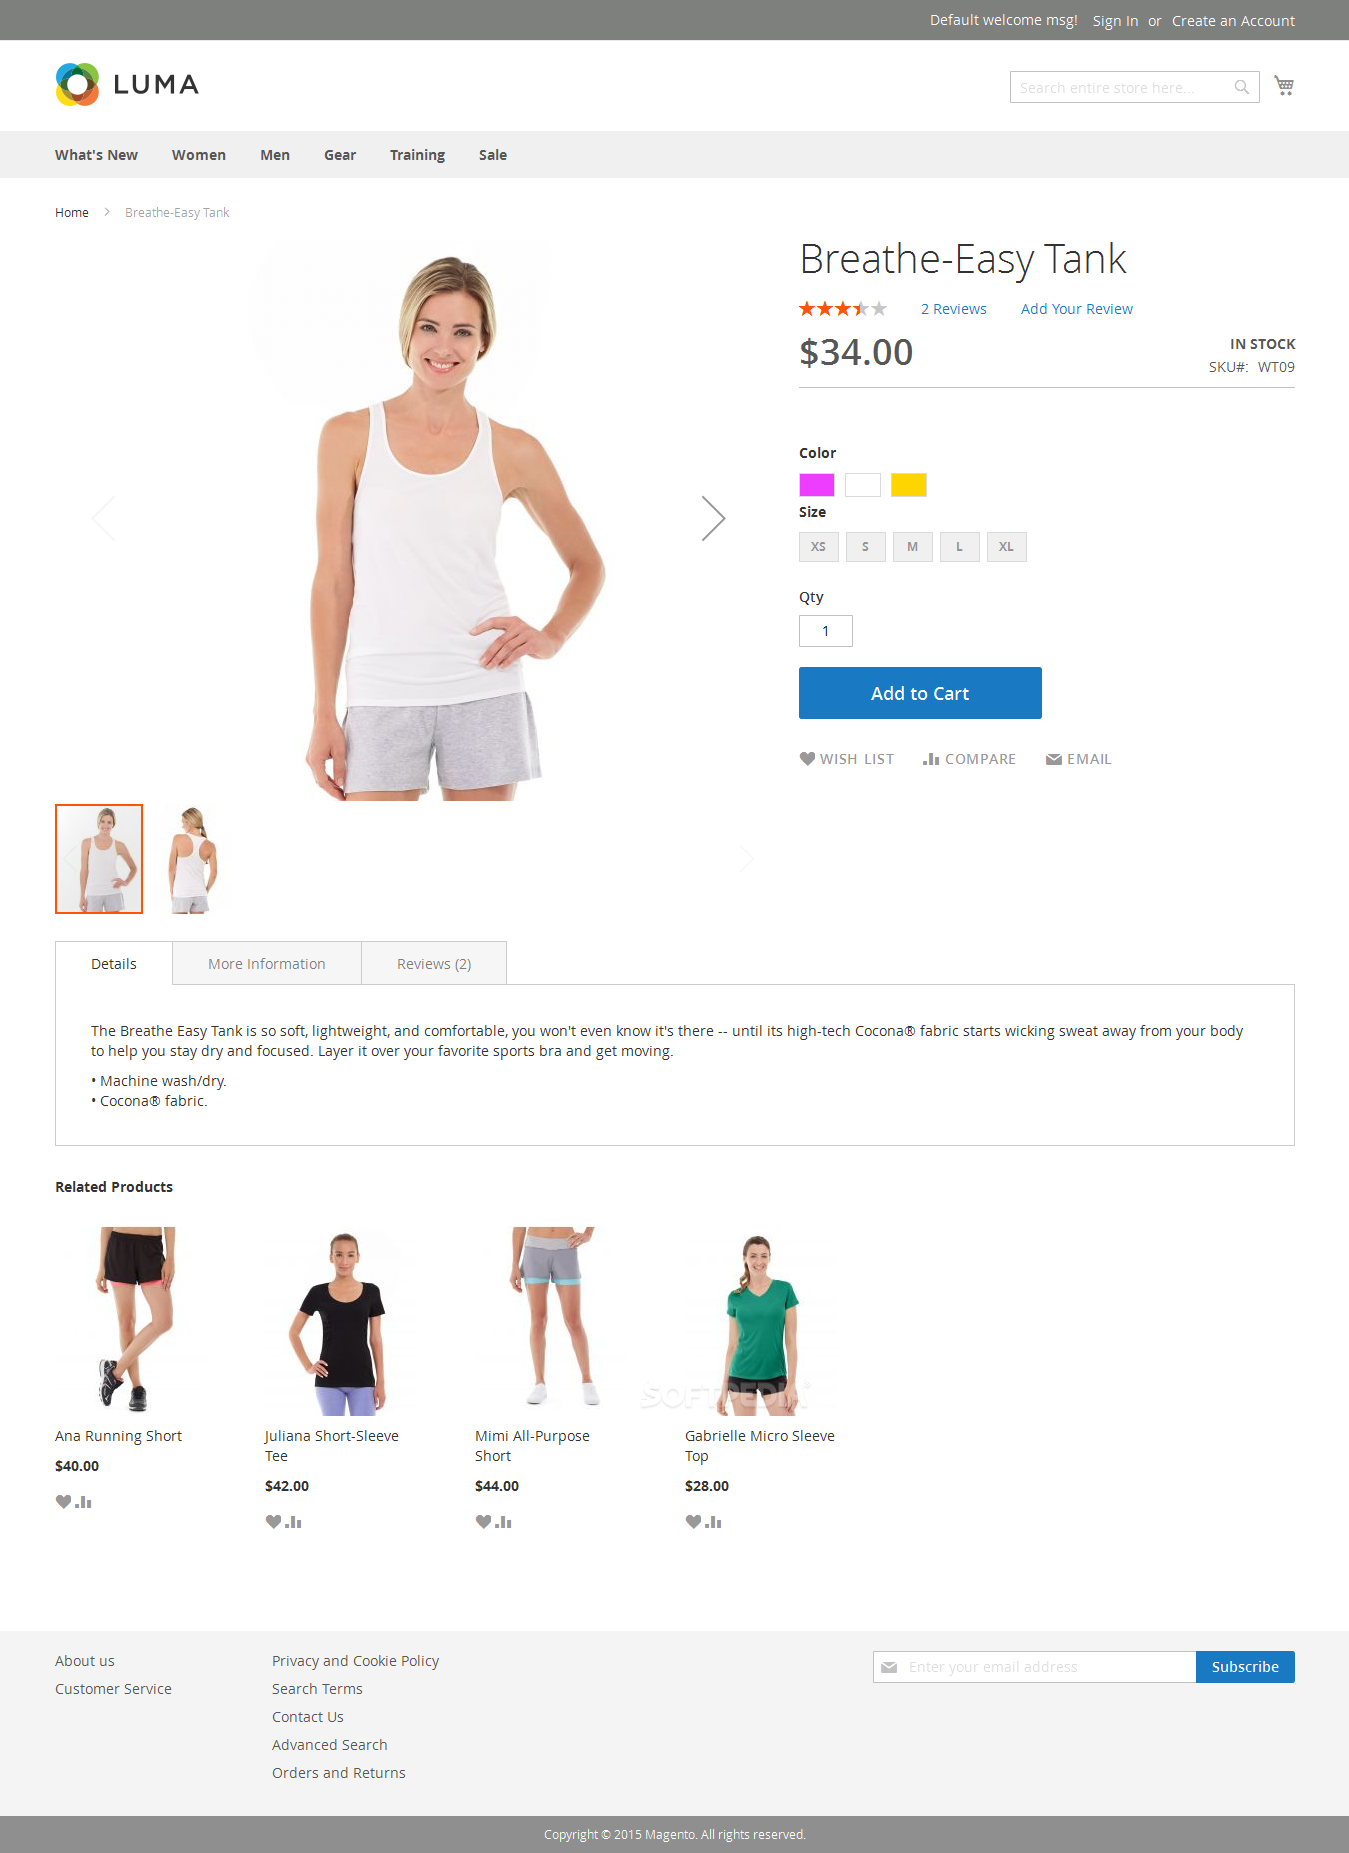 Magento Community Edition - Magento 2.0 also comes with a new frontend theme